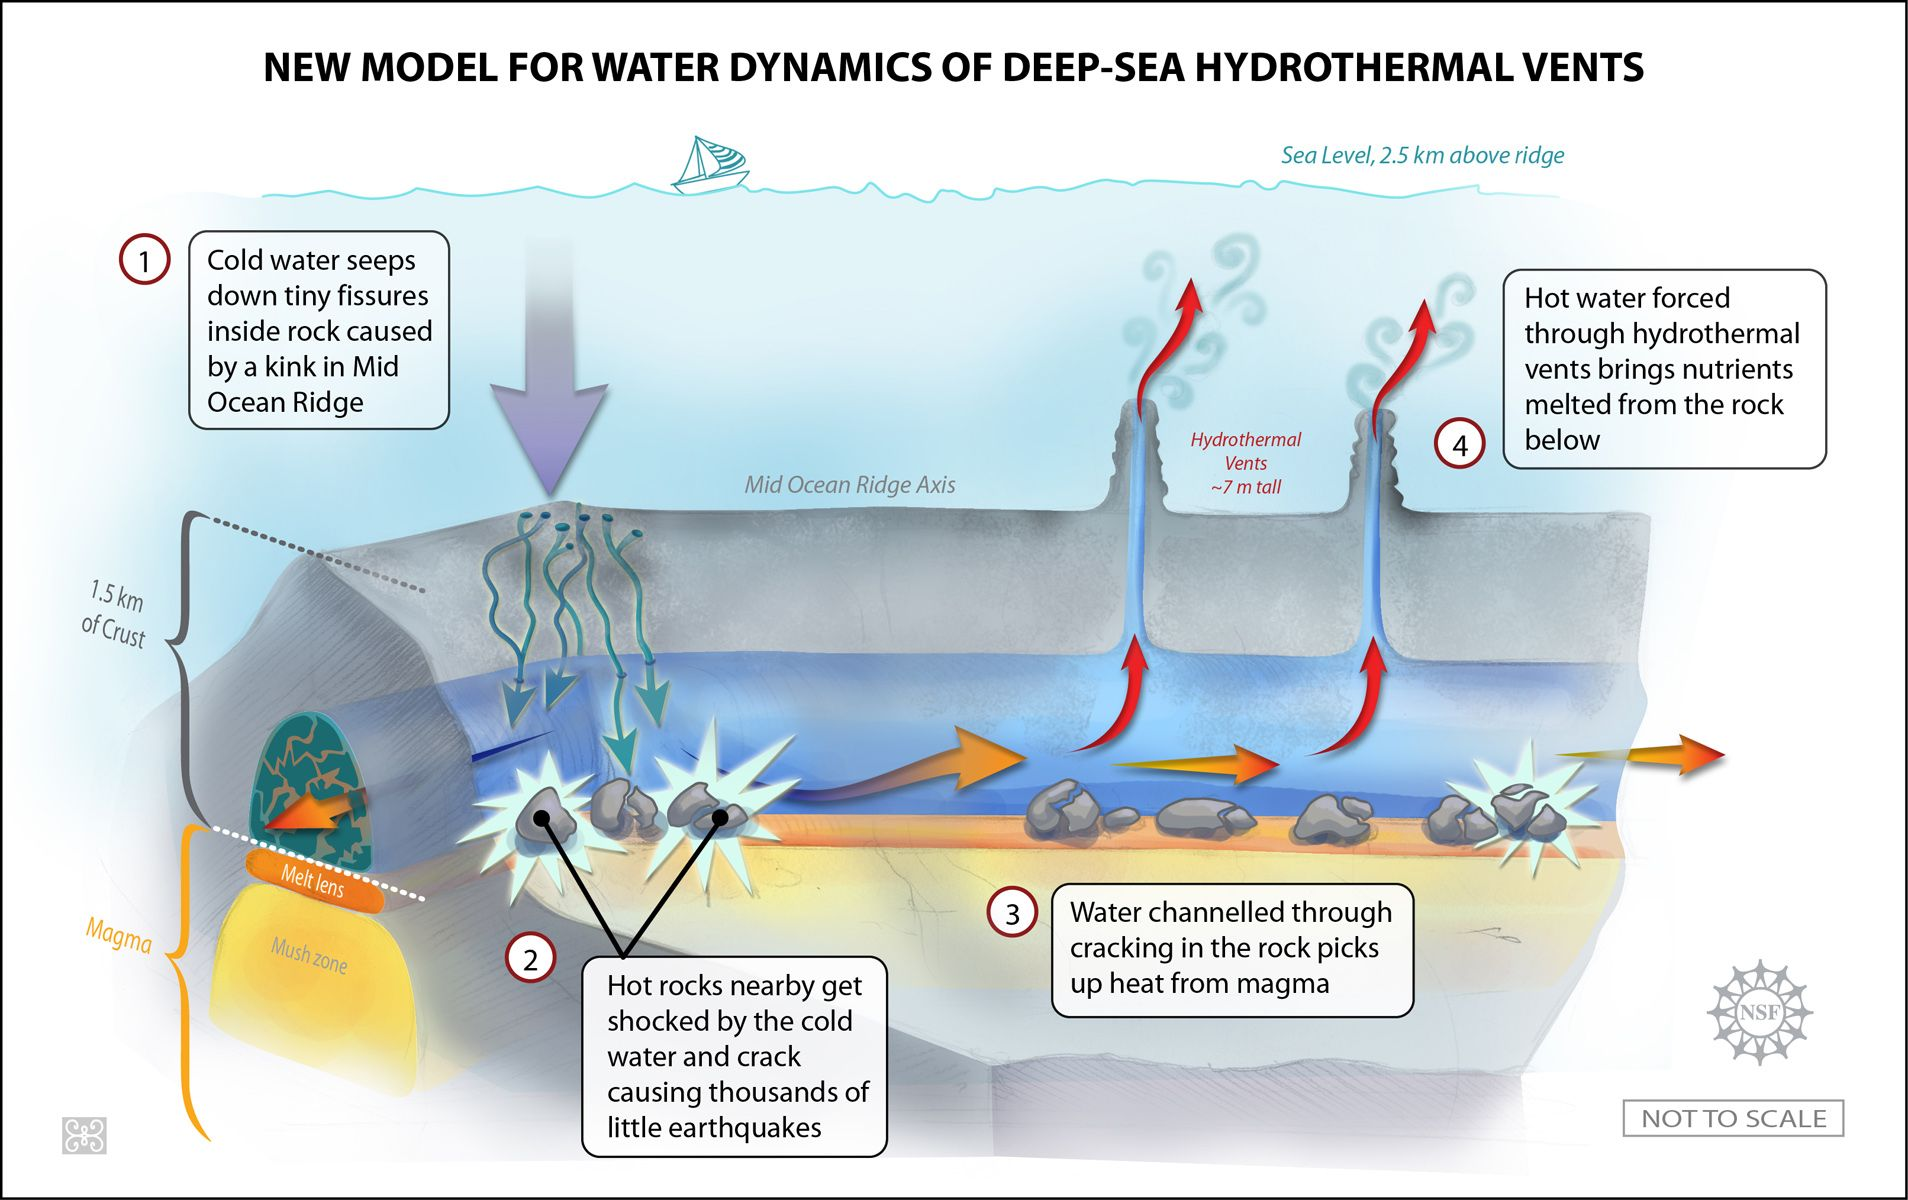 New Model For Water Dynamics Of Hydrothermal Vents